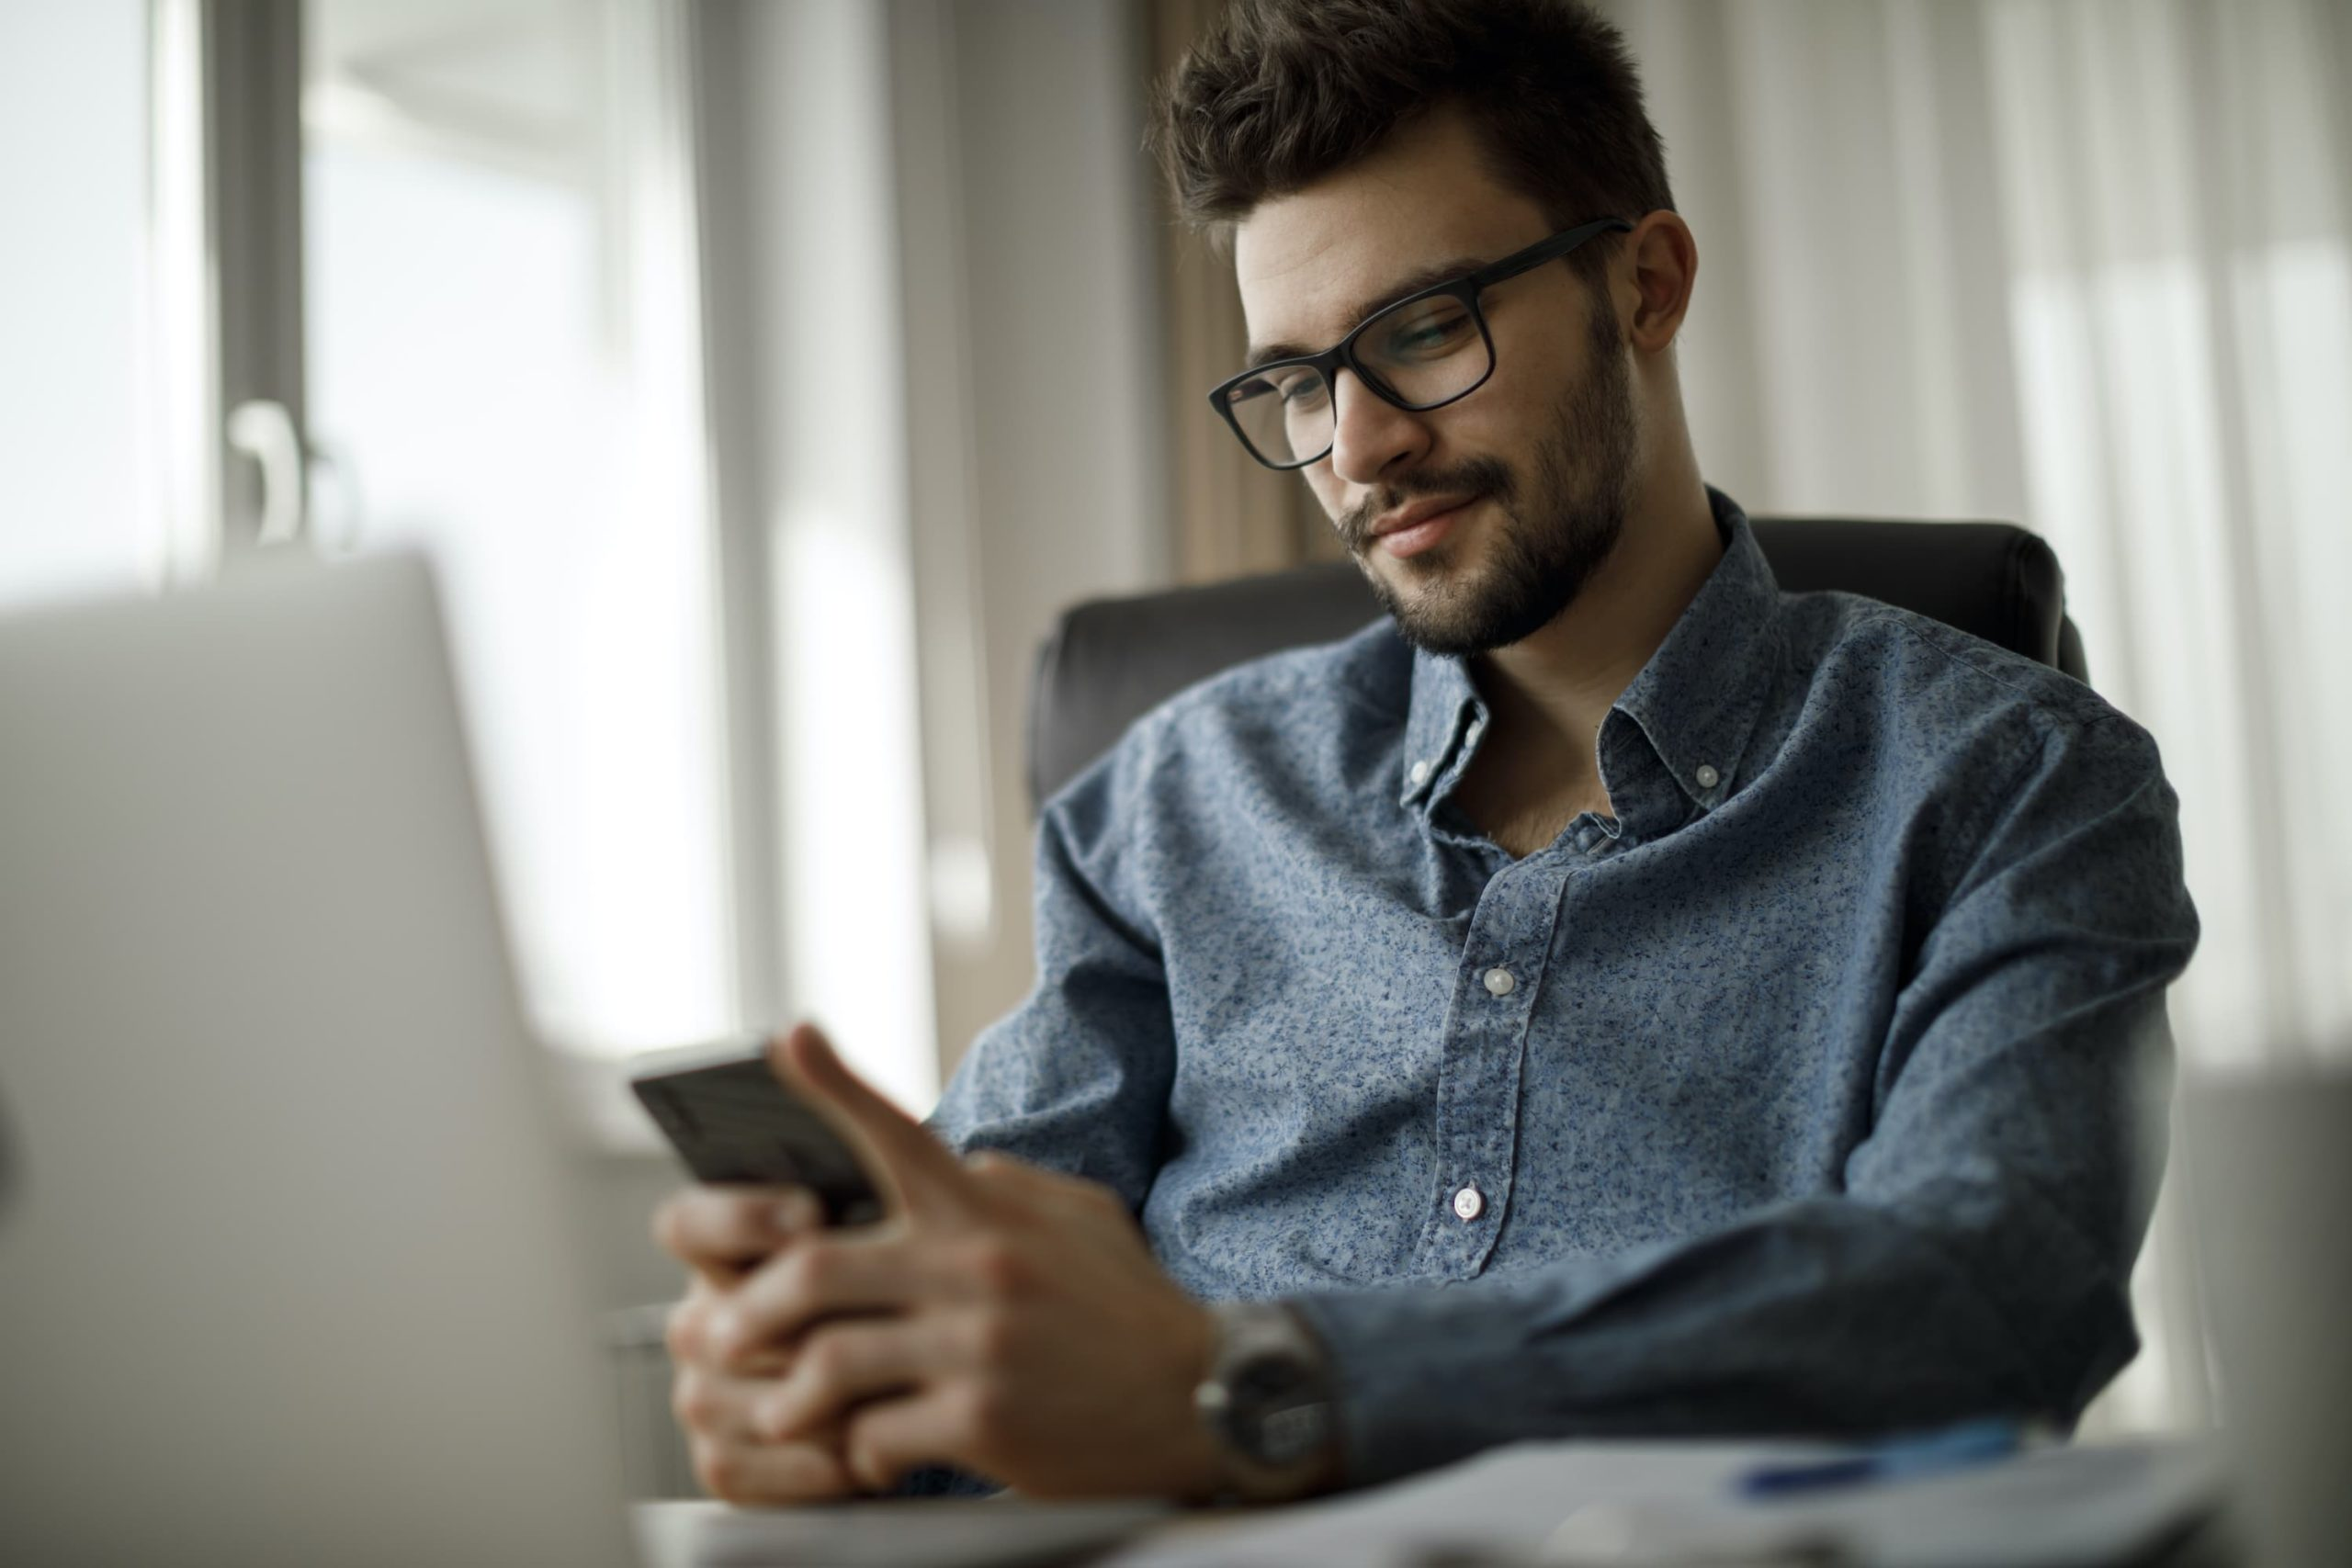 Man texting on cellphone while at desk